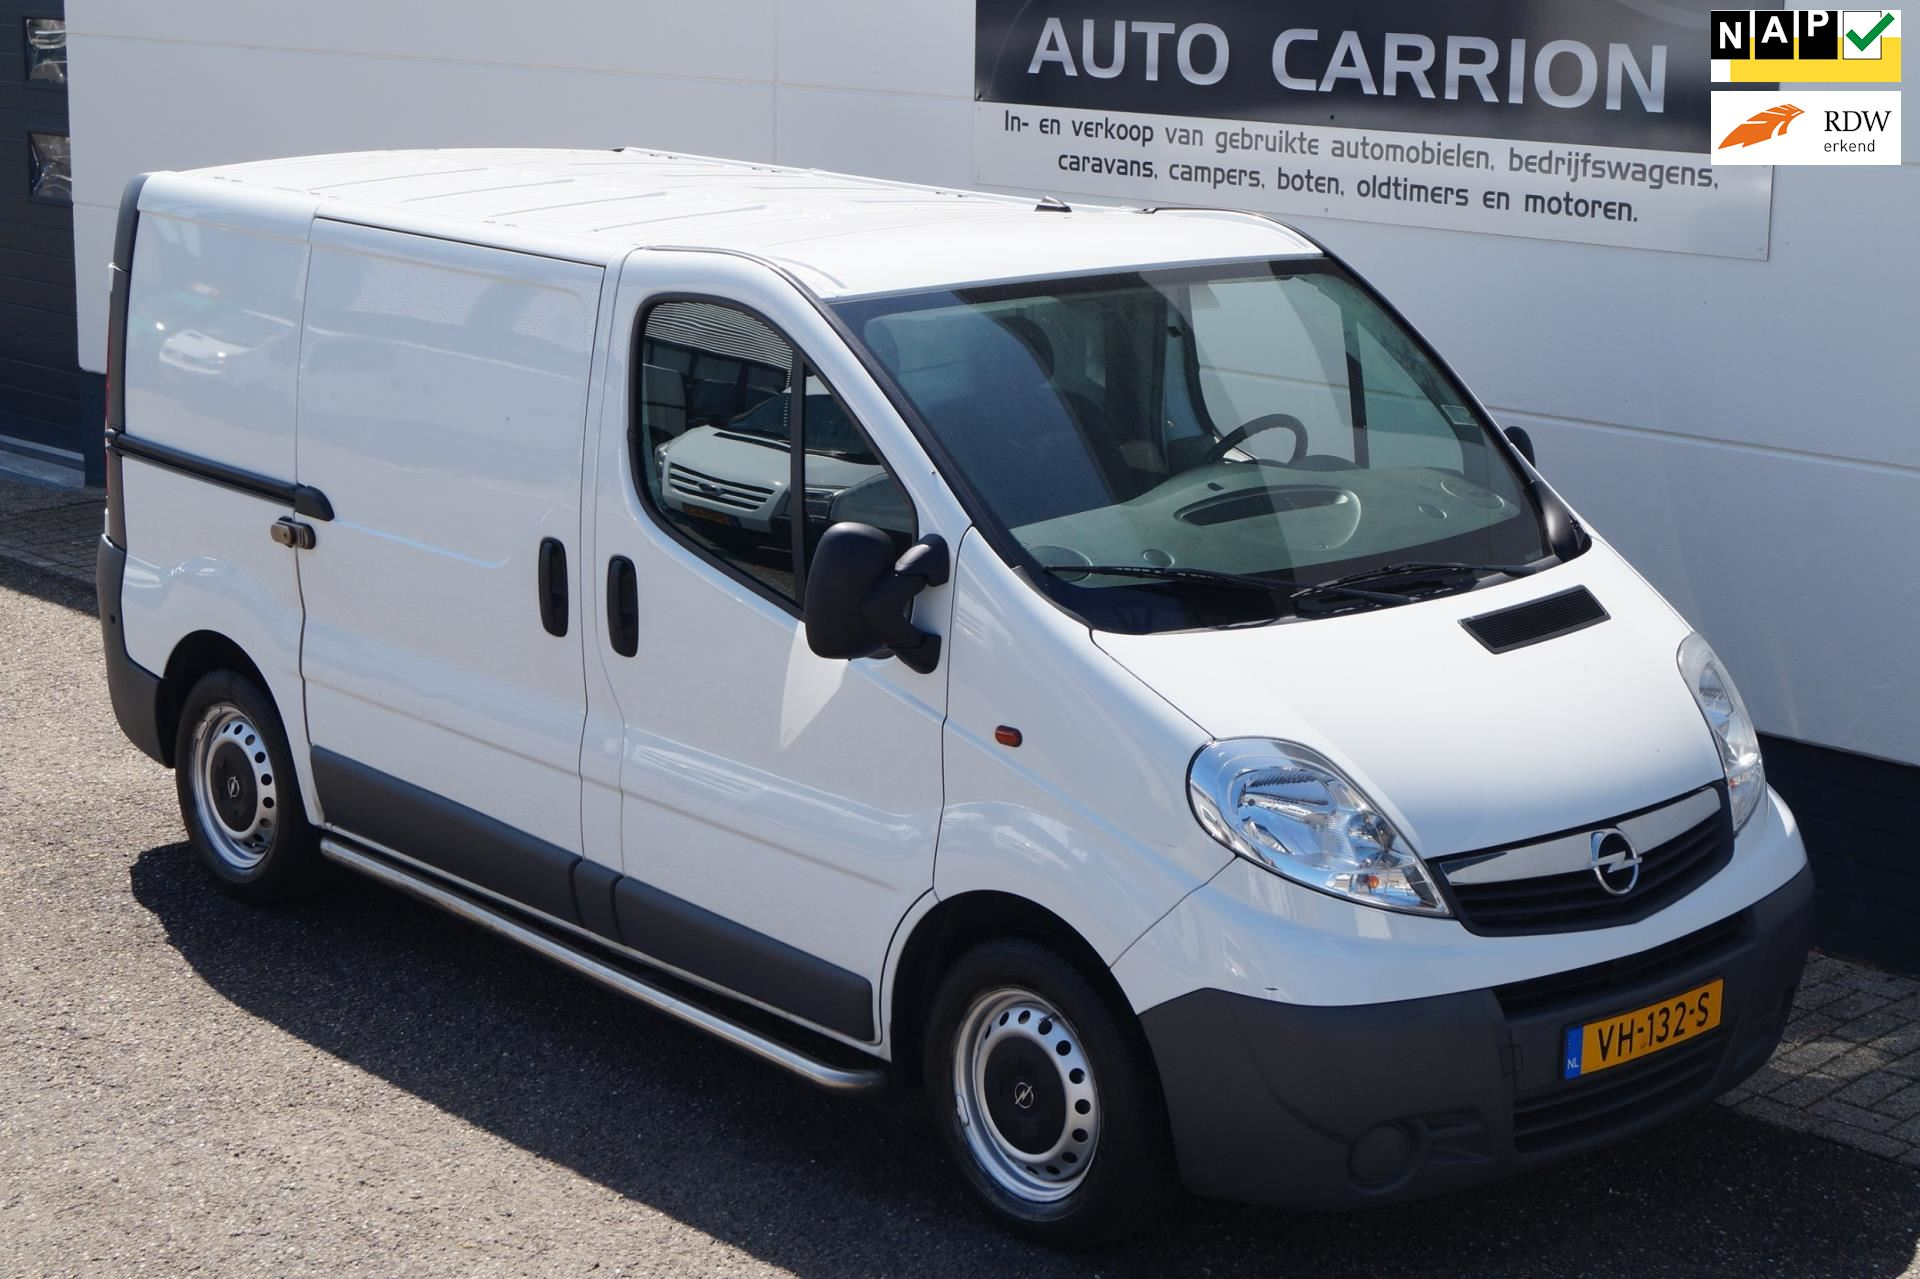 Opel Vivaro occasion - CARRION